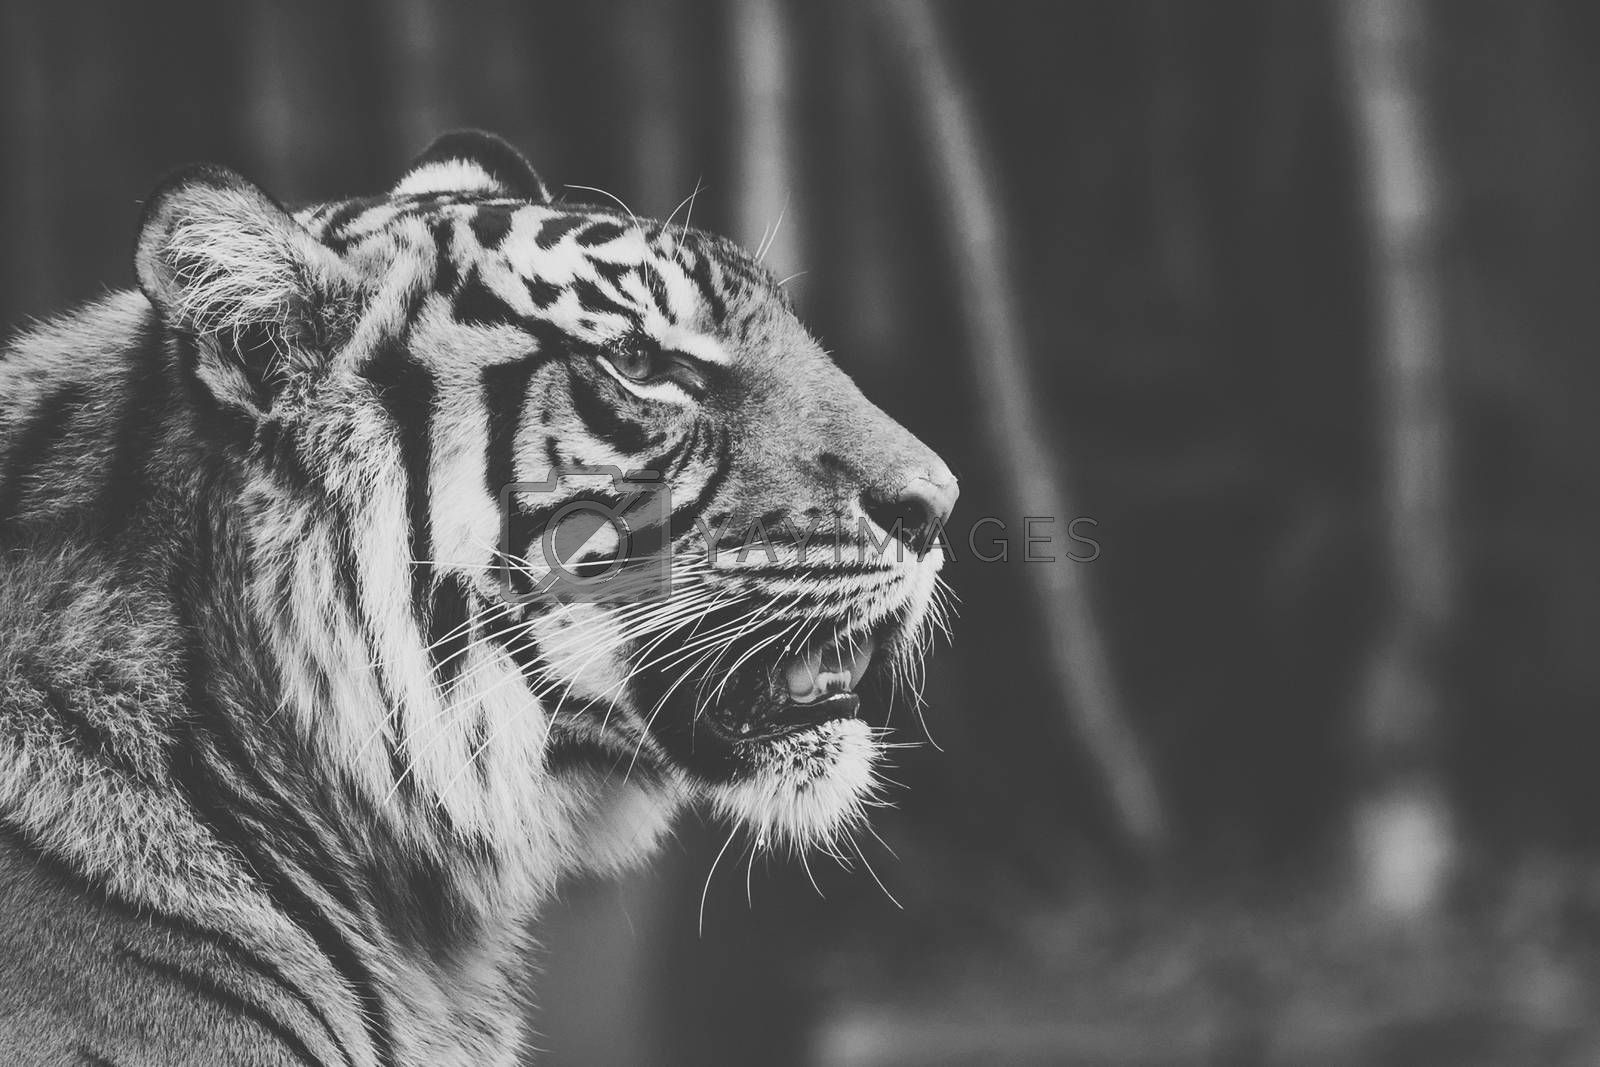 Large Bengal Tiger by itself outdoors during the day time.